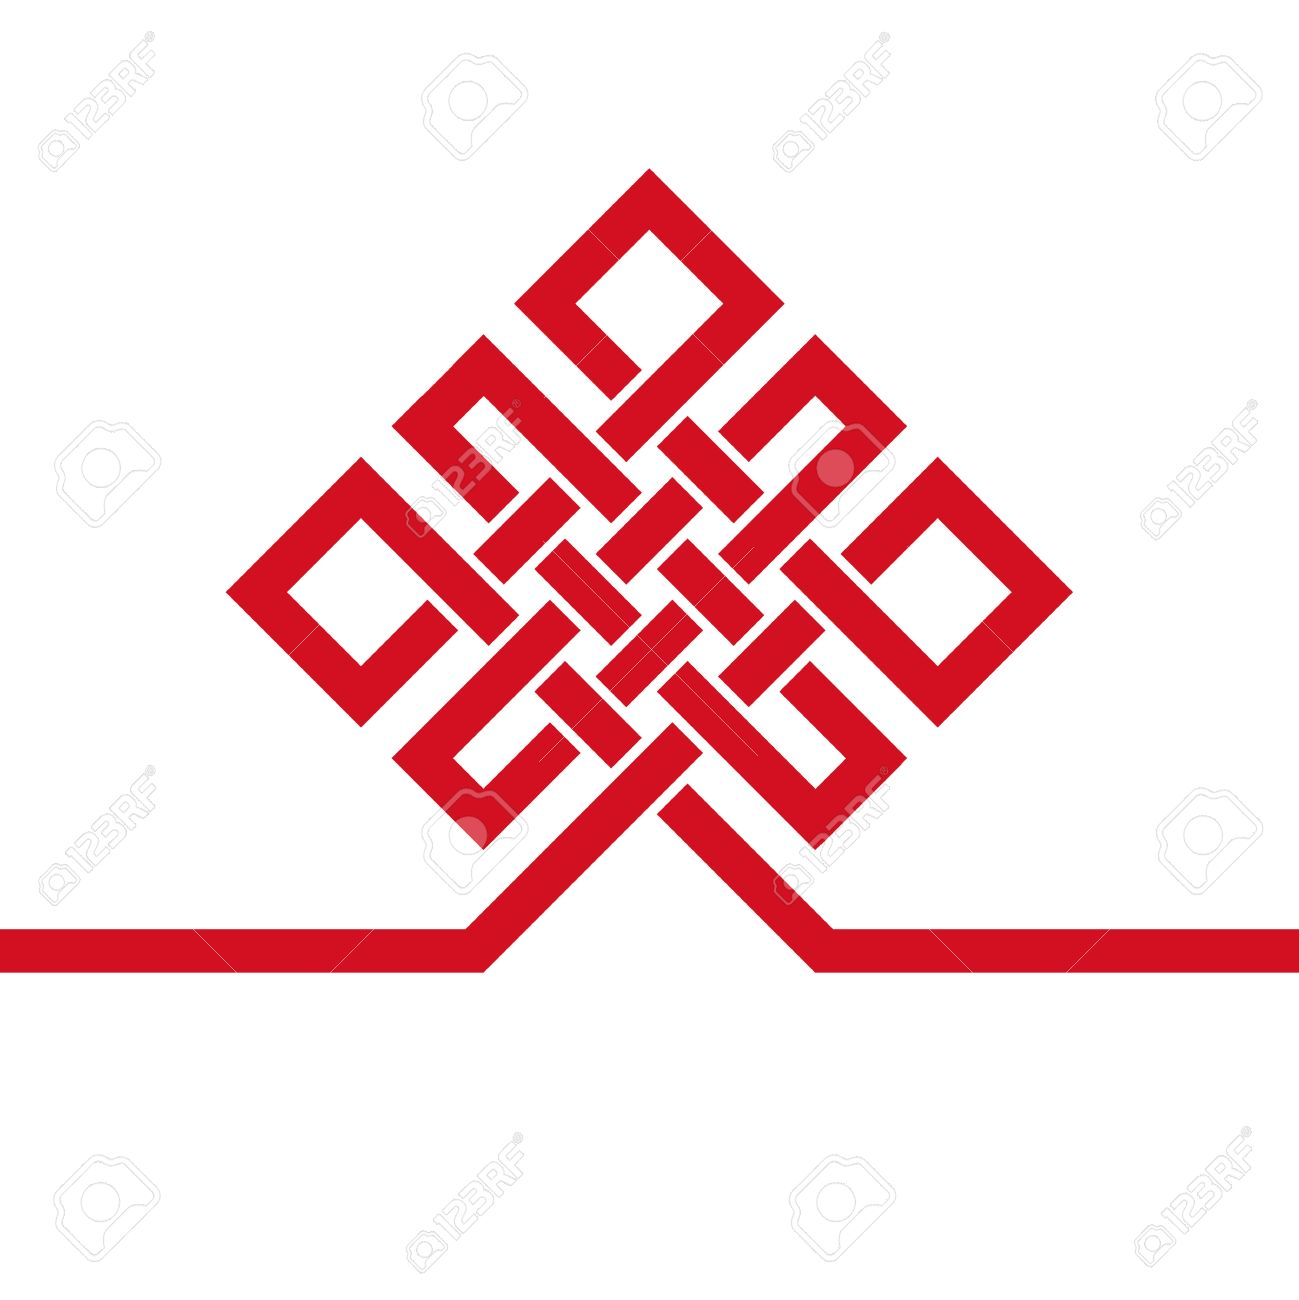 Endless Auspicious knot.China,Tibet Eternal , Buddhism and Spirituality icon,symbol.Vector Black sign,card template .Feng Shui traditional element,geometric ornament. - 53460593